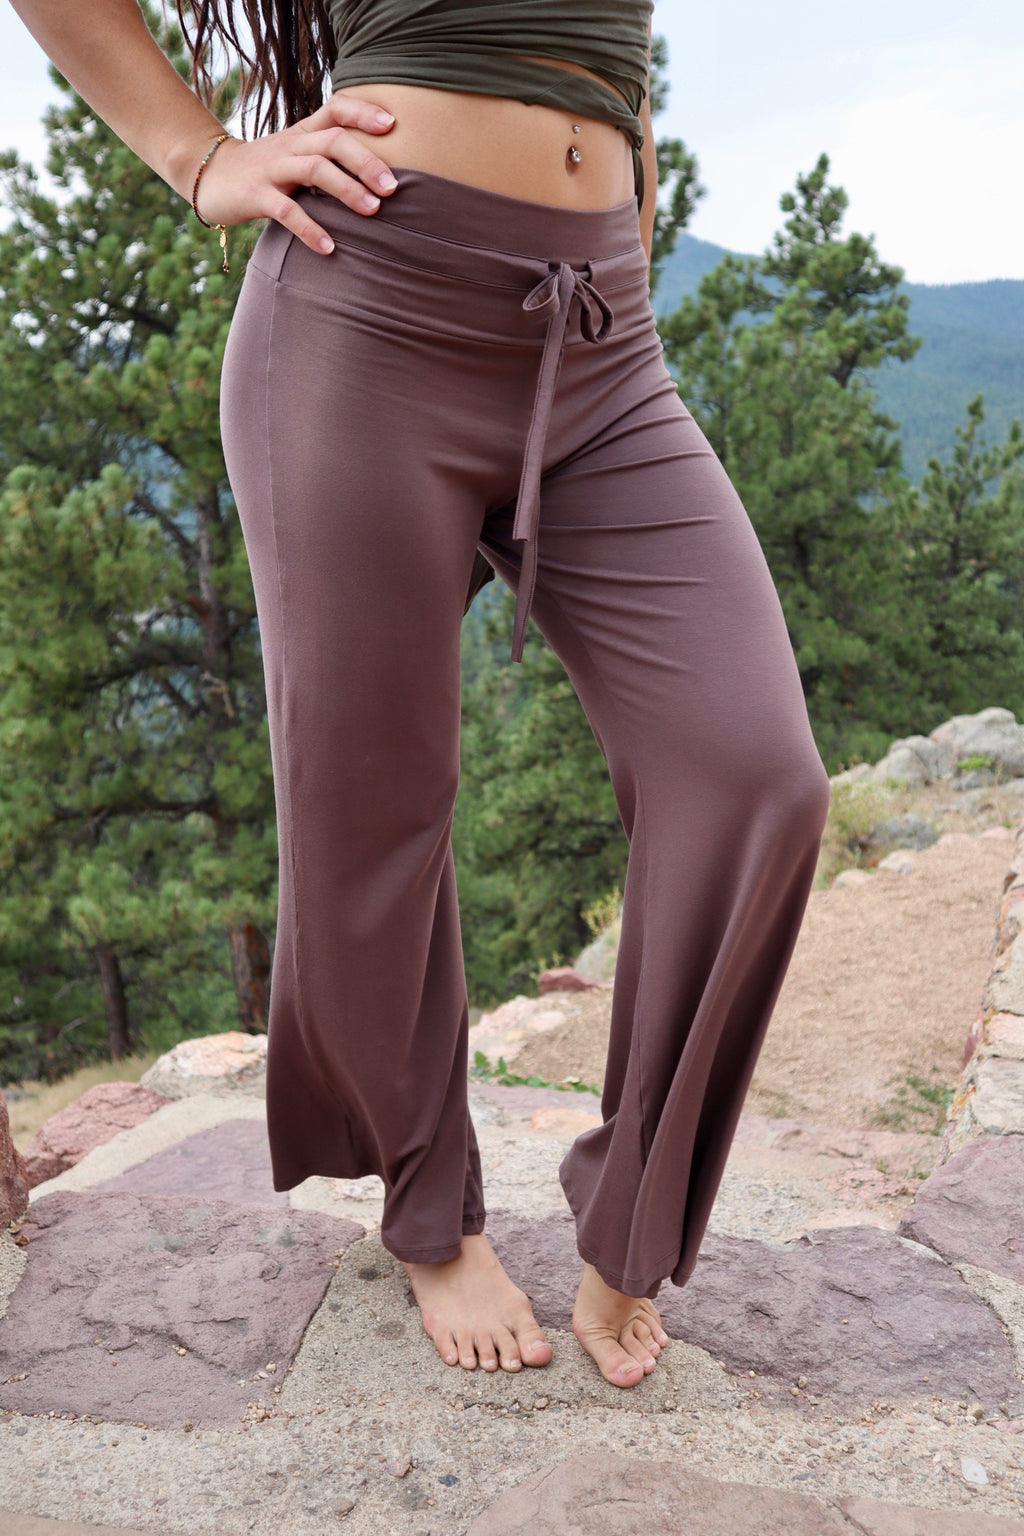 Travel Pants - Charcoal Brown - Filosophy